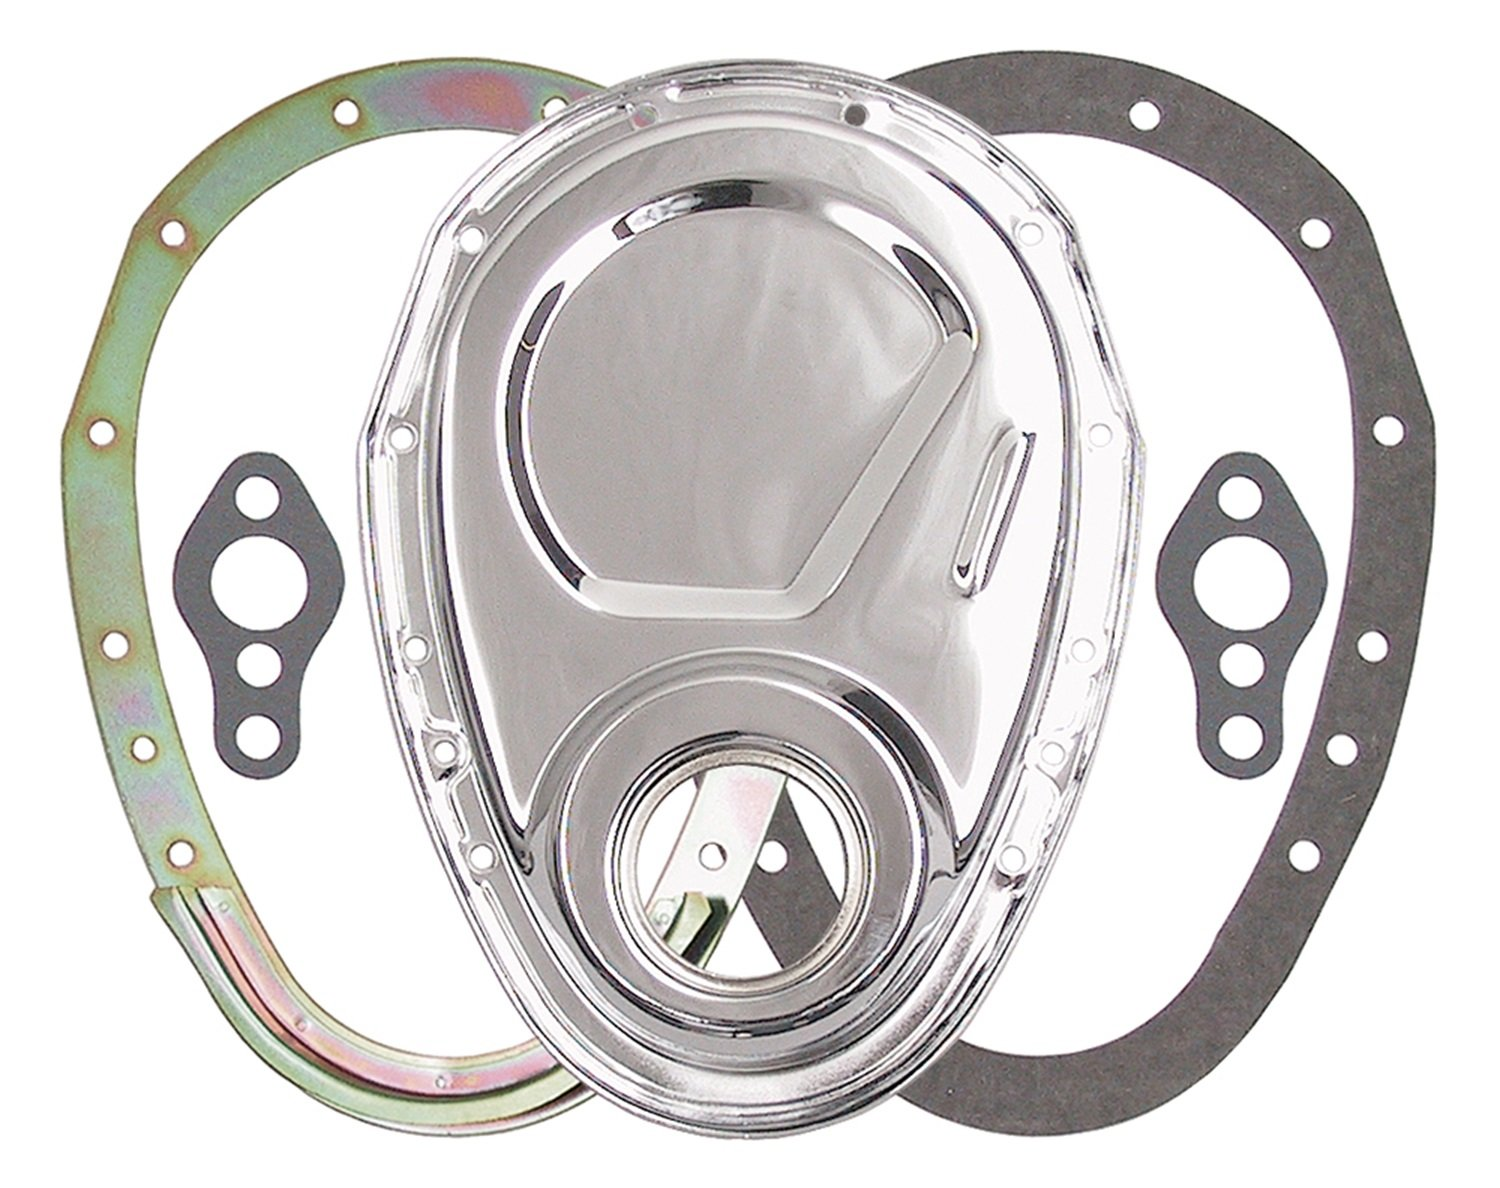 Trans-Dapt 8909 2-Piece Timing Chain Cover Set Trans-Dapt Performance